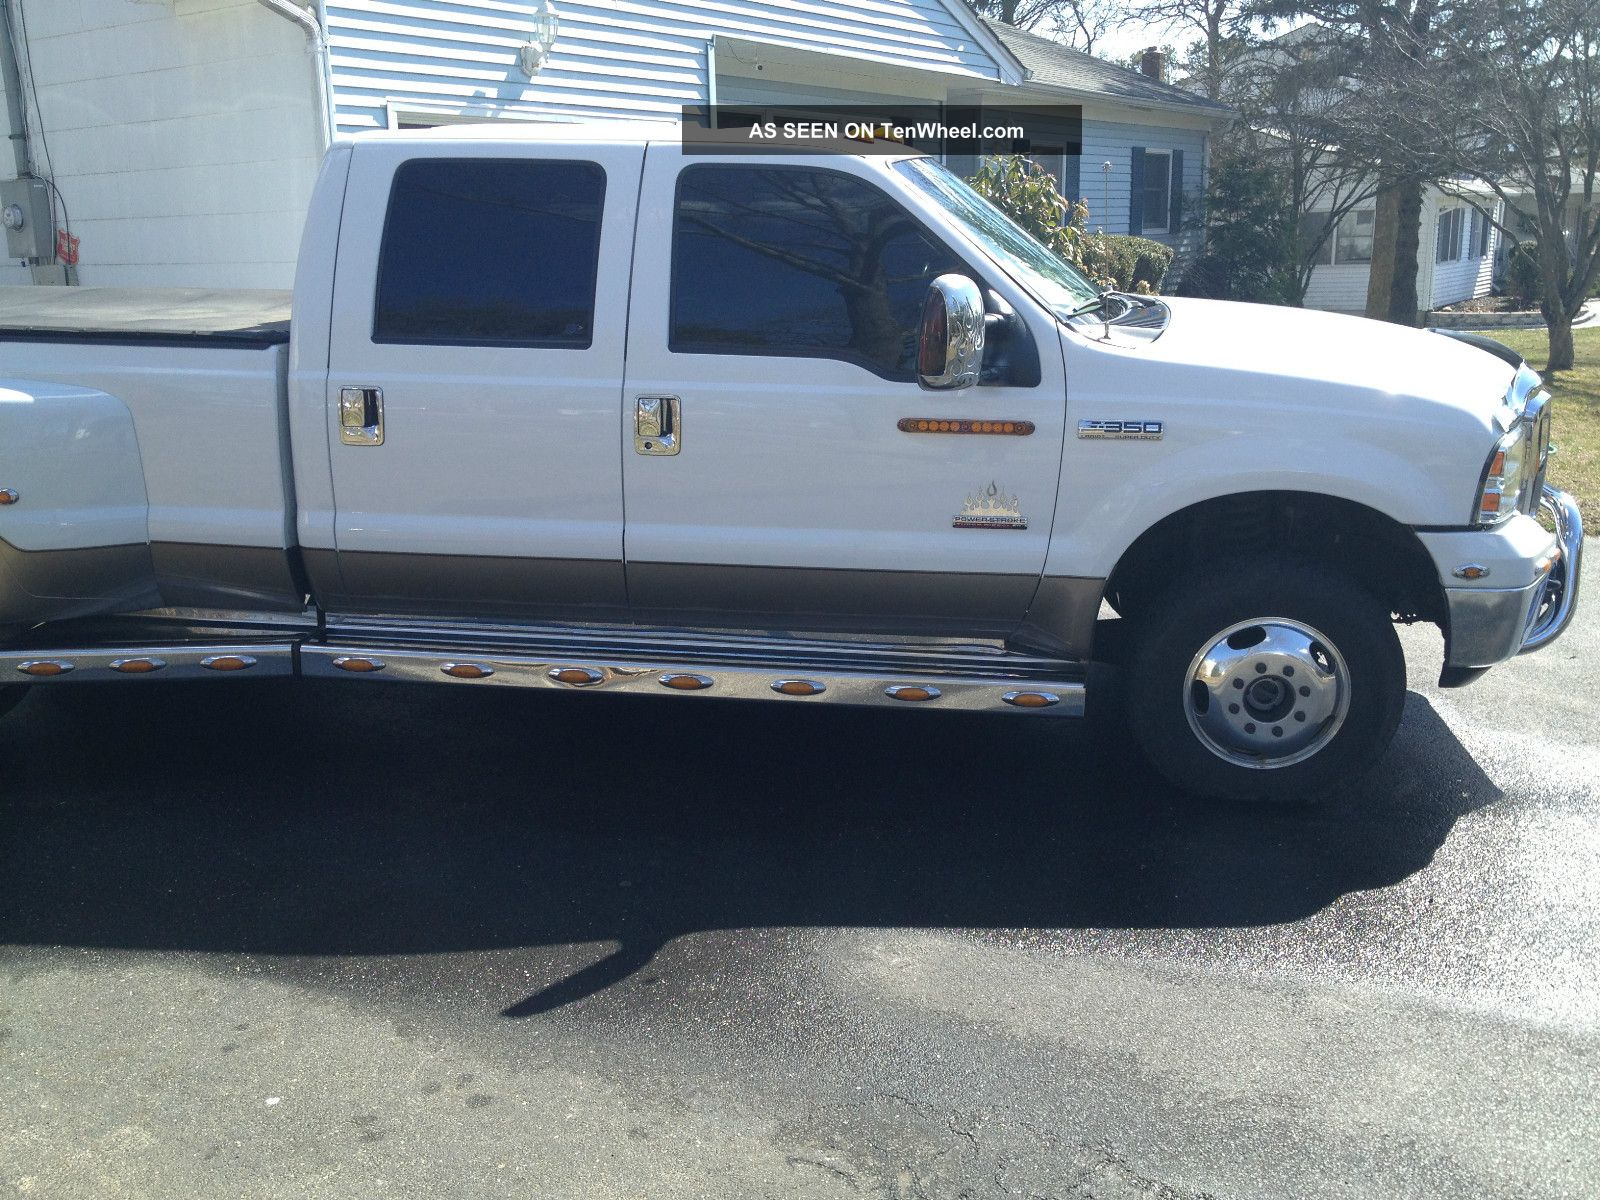 2006 Ford F350 Diesel 4x4 Truck W Dew Eze Hay Bale Pick  Dually Conversion Ford F350 2005 Ford F350 Lariat Dually ...